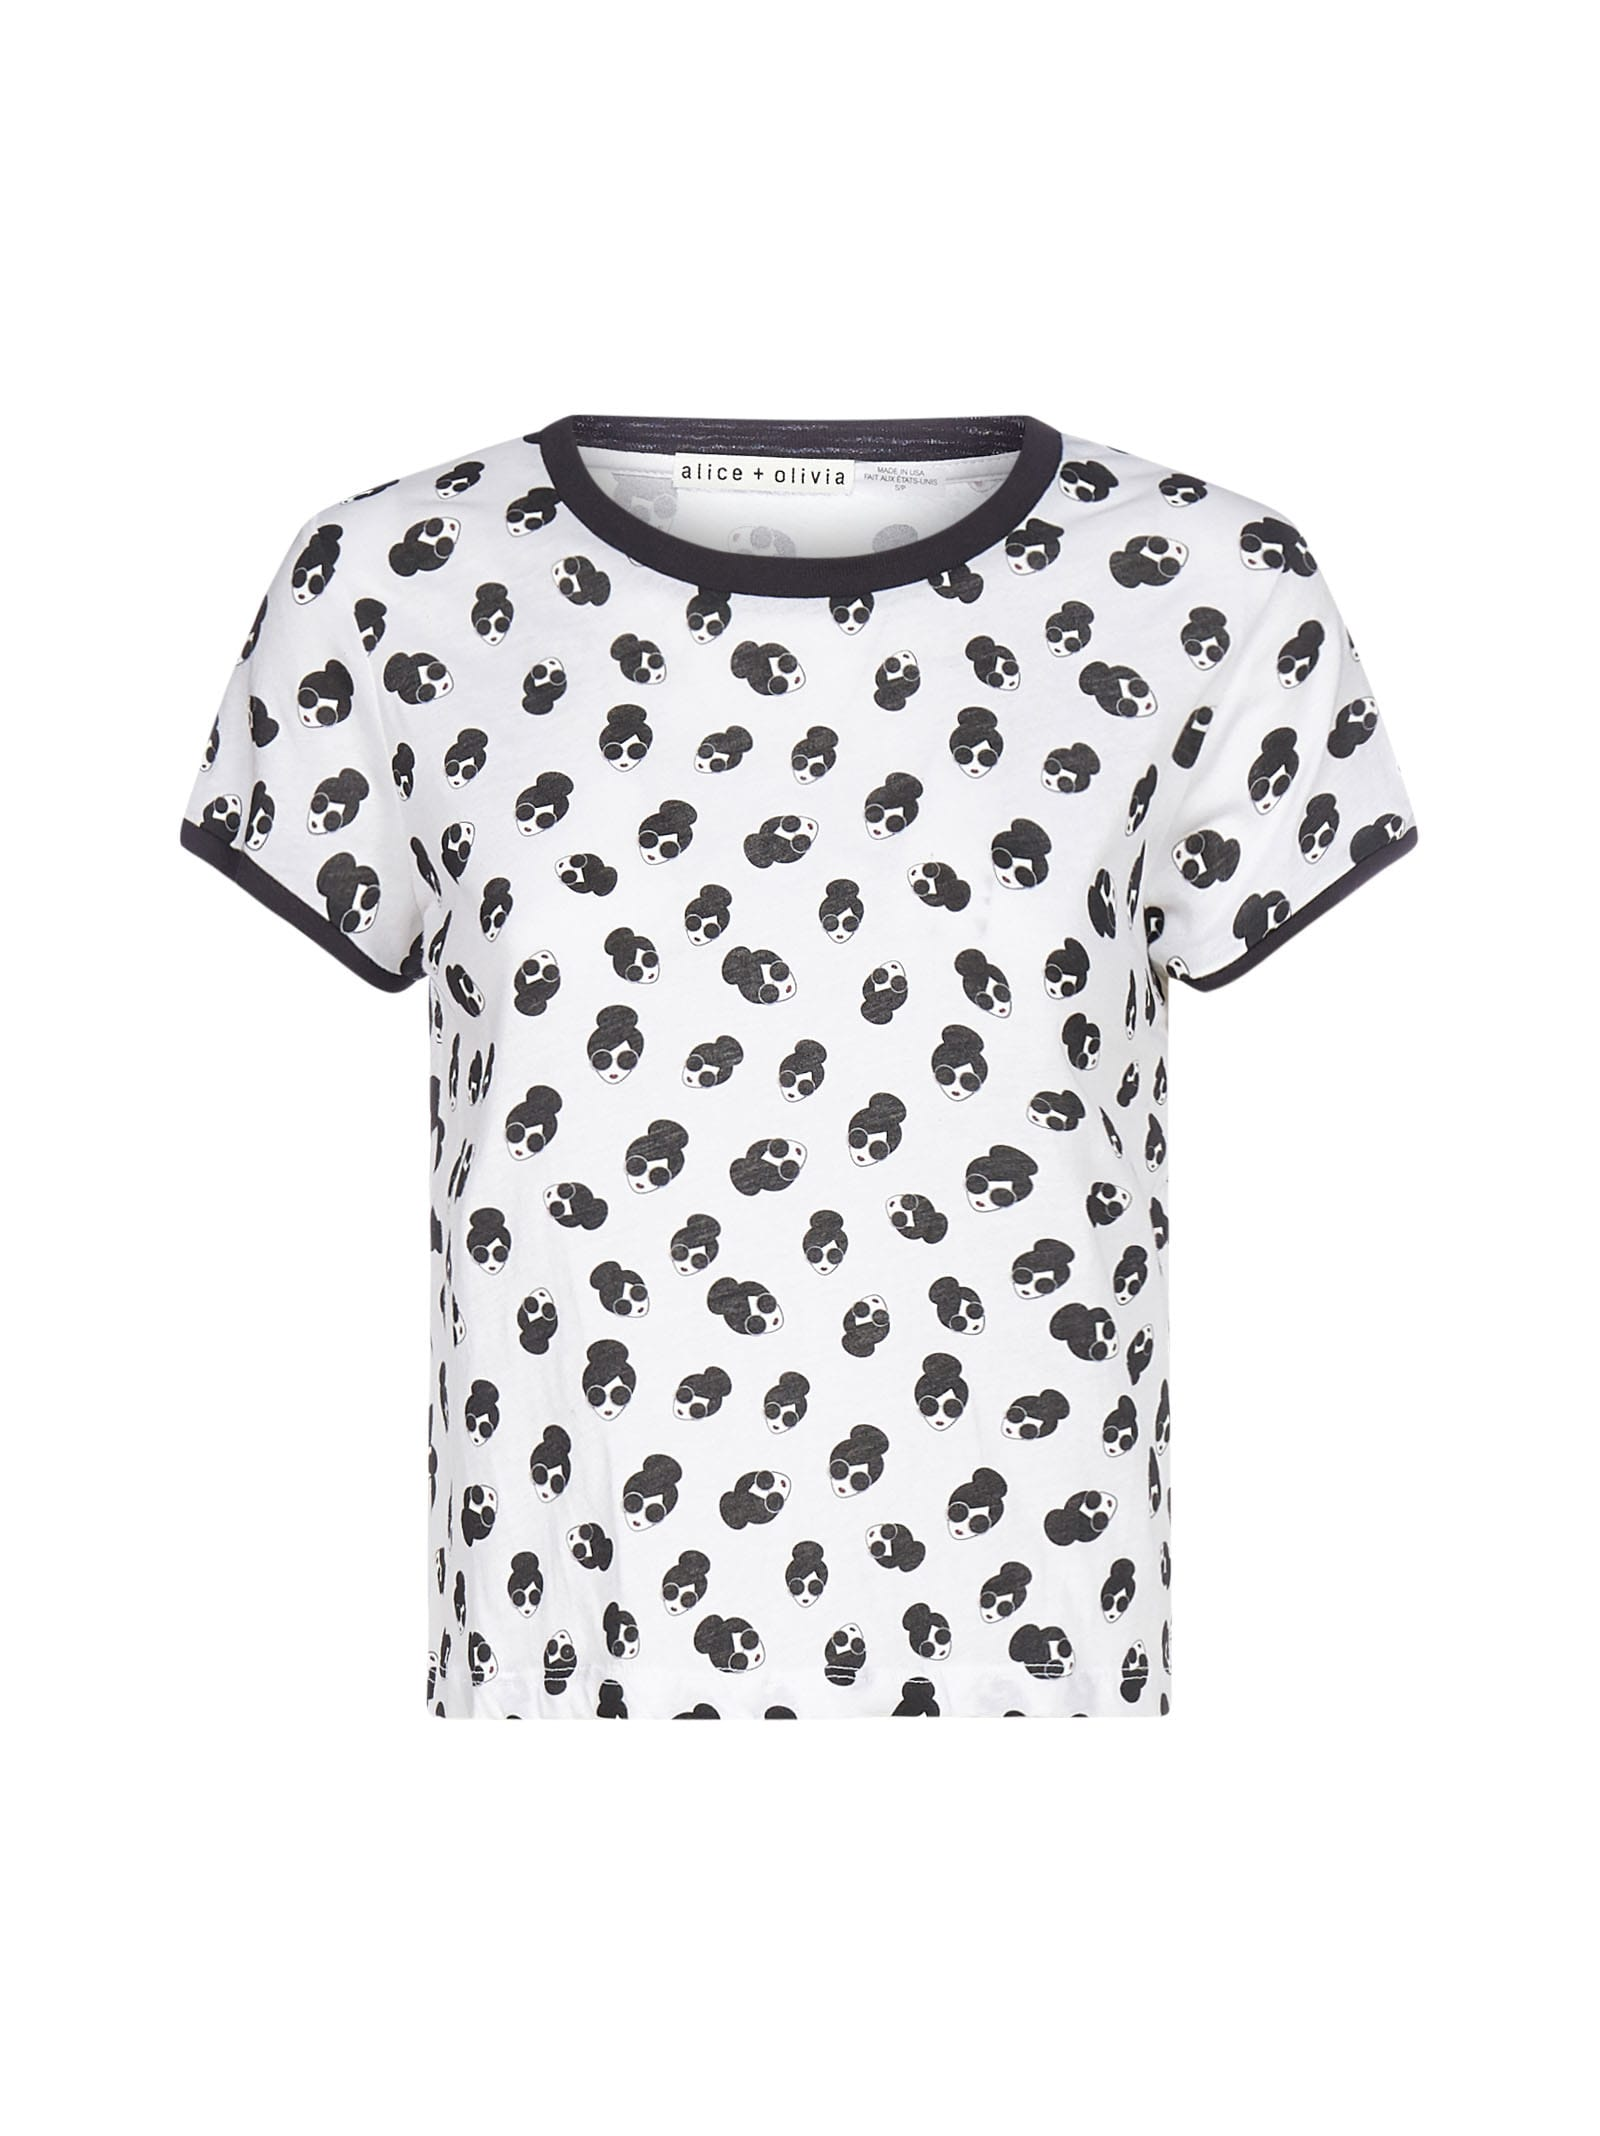 Alice And Olivia T-SHIRT